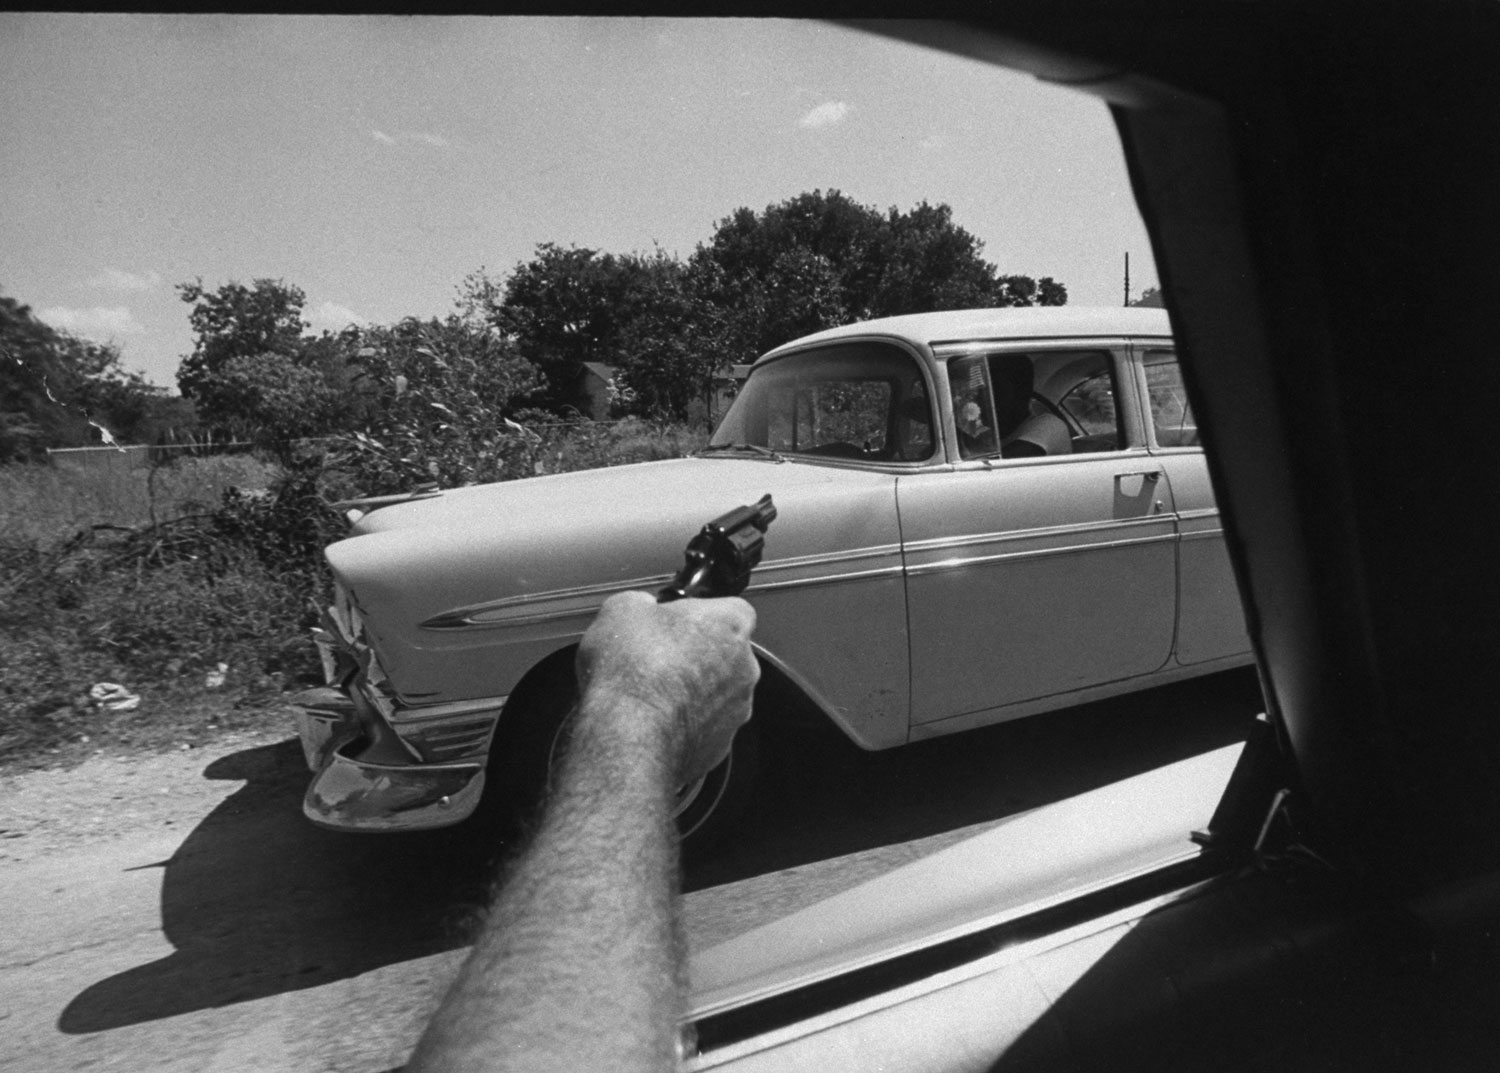 A U.S. Customs agent points his gun at a car suspected of transporting marijuana, 1969.